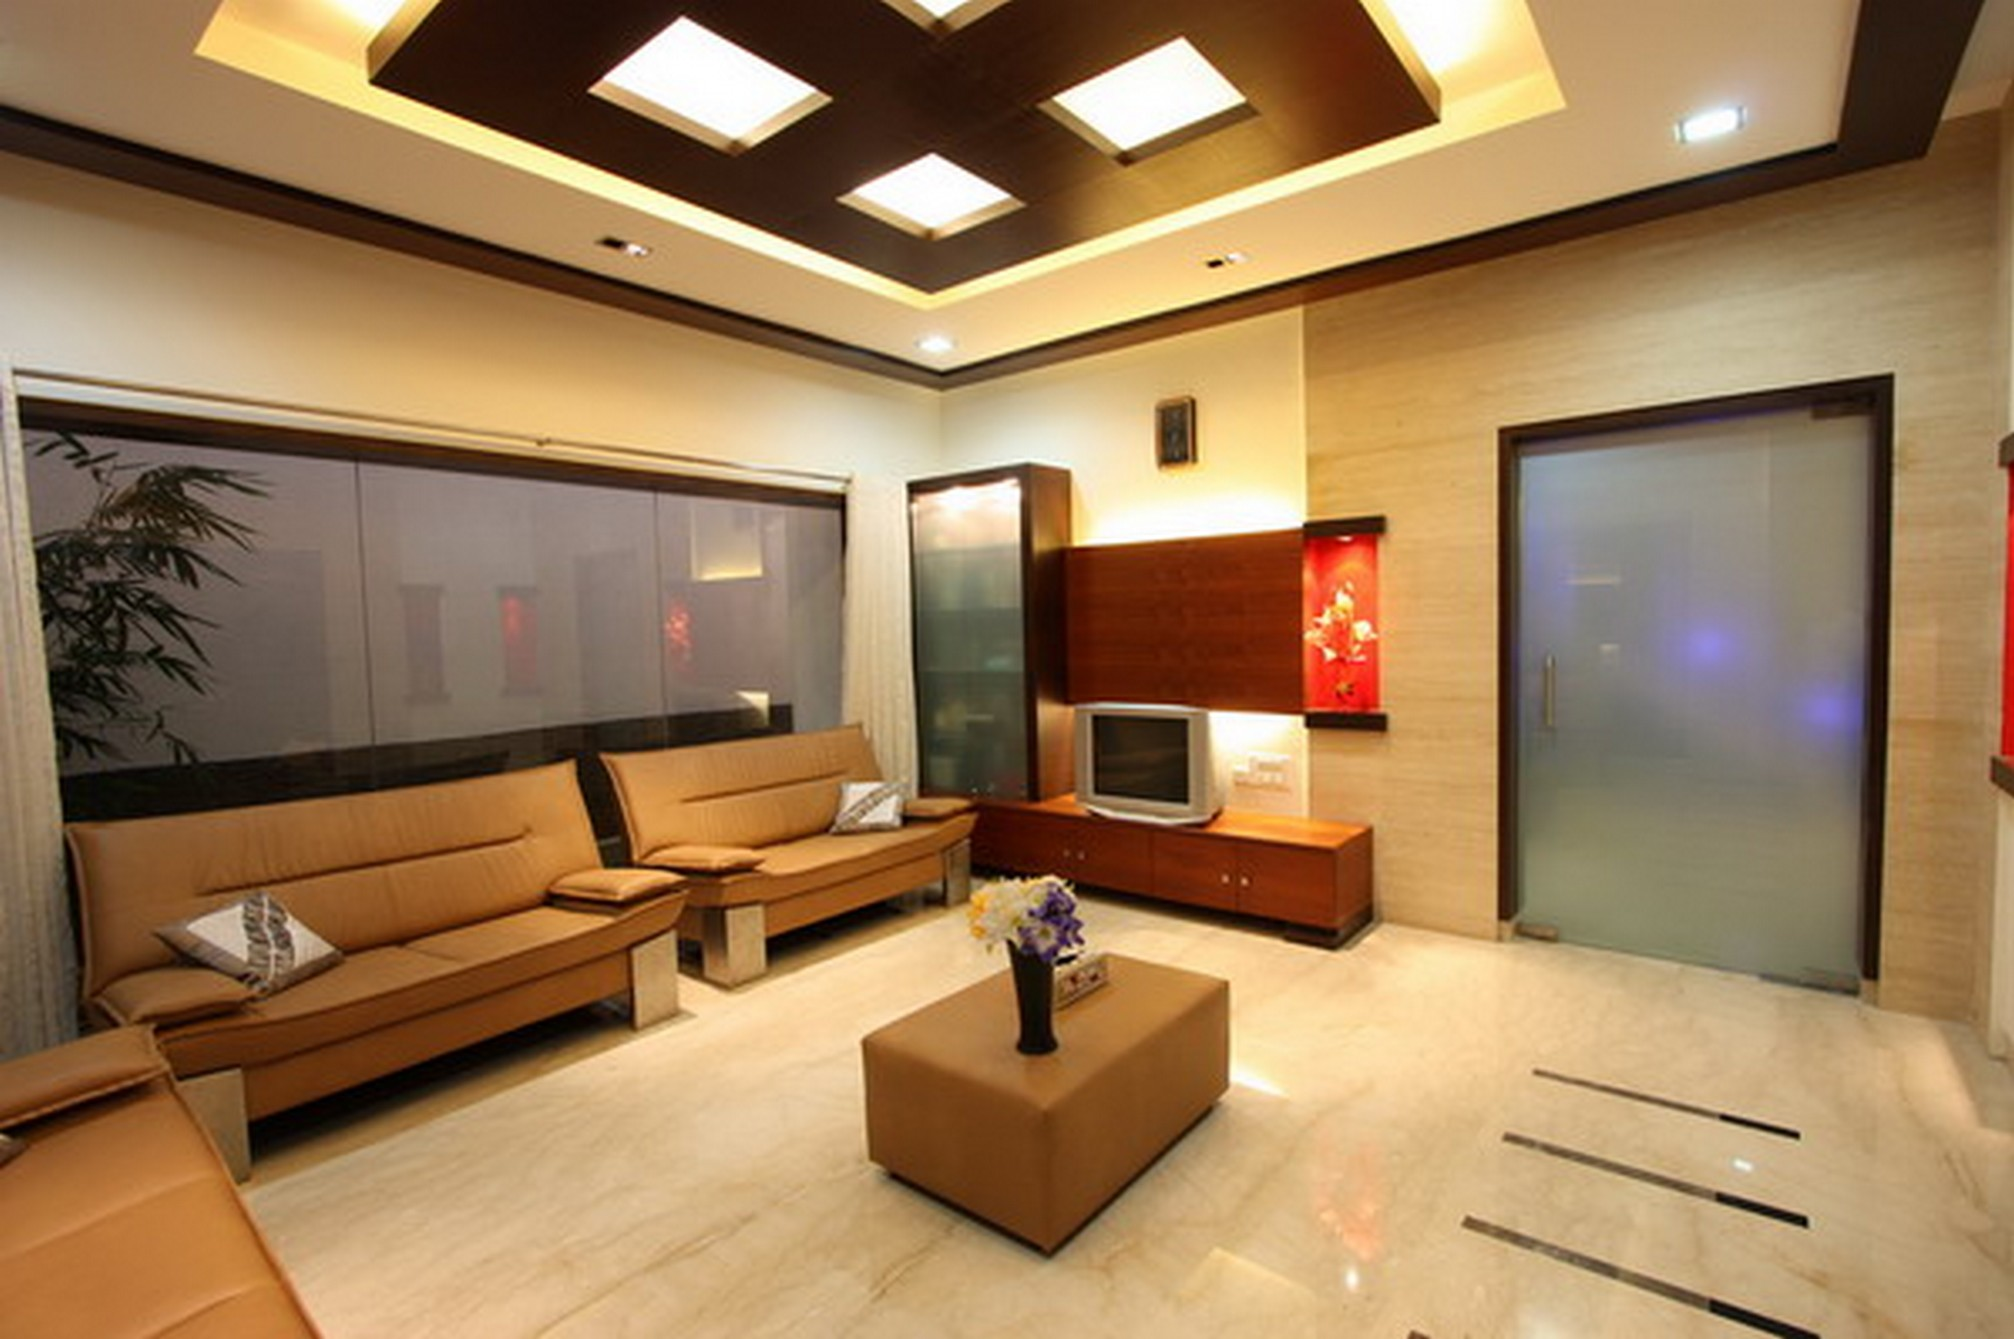 Ceiling Design For Small Room 25 Latest False Designs For Living Room And Bed Room